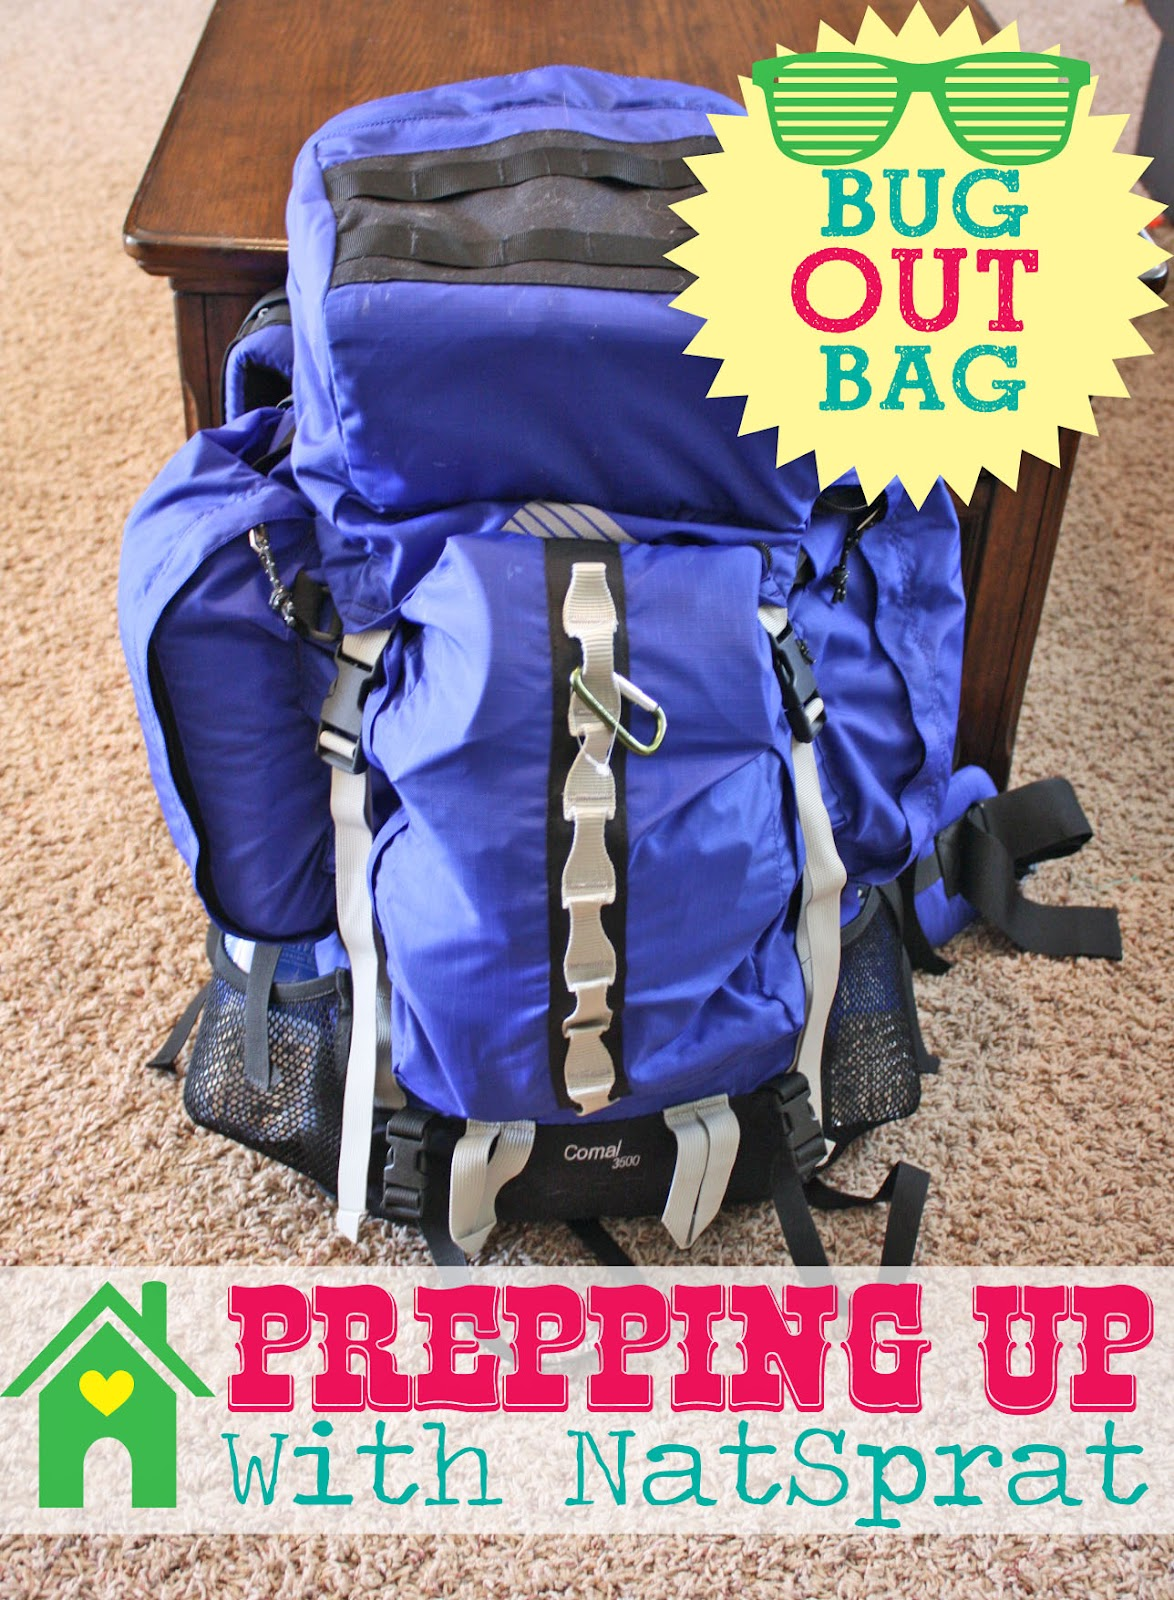 Prepping With NatSprat: 72 hour kit {Bug Out Bag}